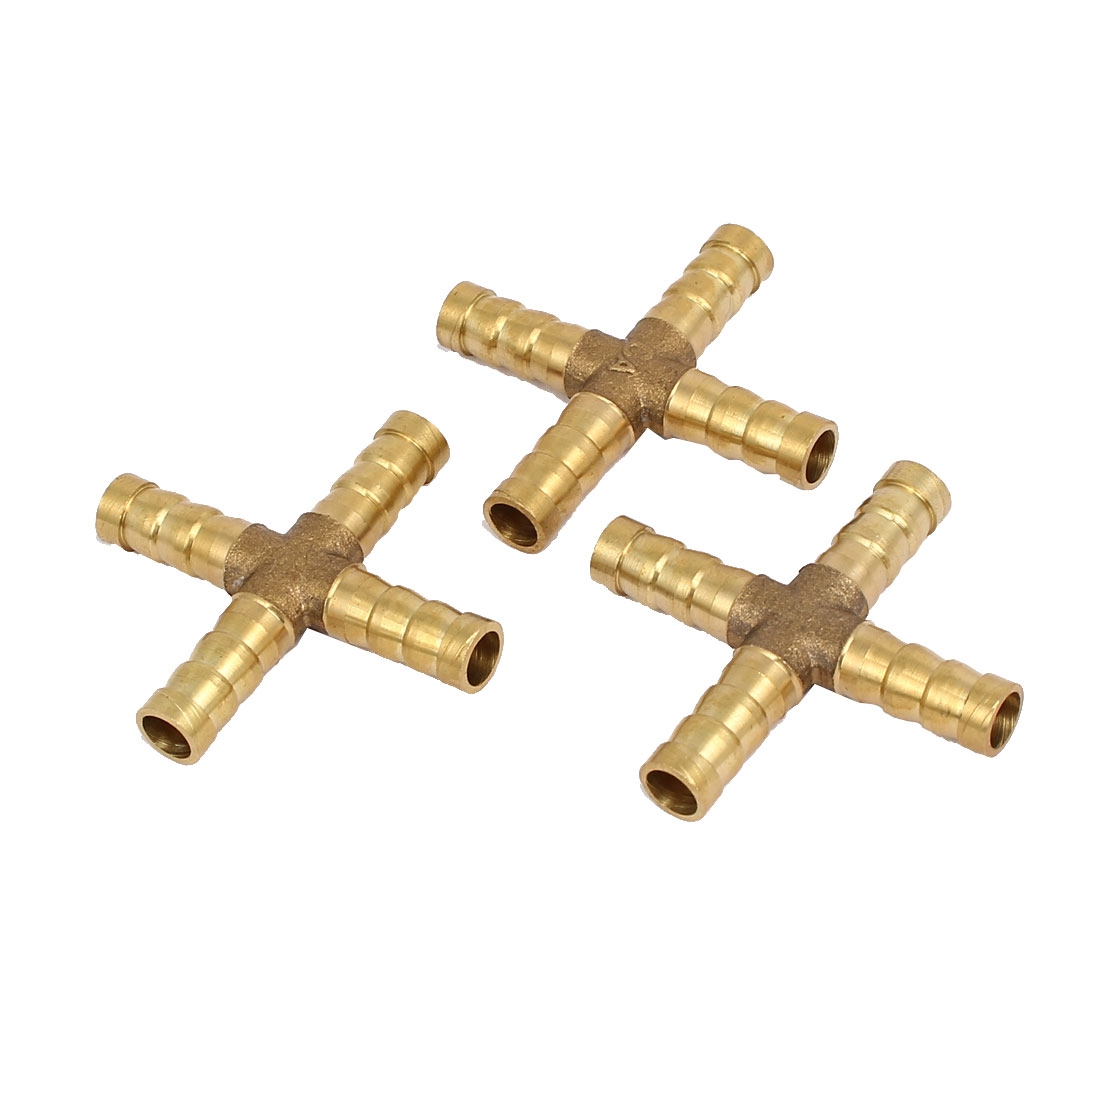 8mm Dia Cross Shaped Hose Barb Air Fuel Pipe Connectors Joint Fittings 3pcs